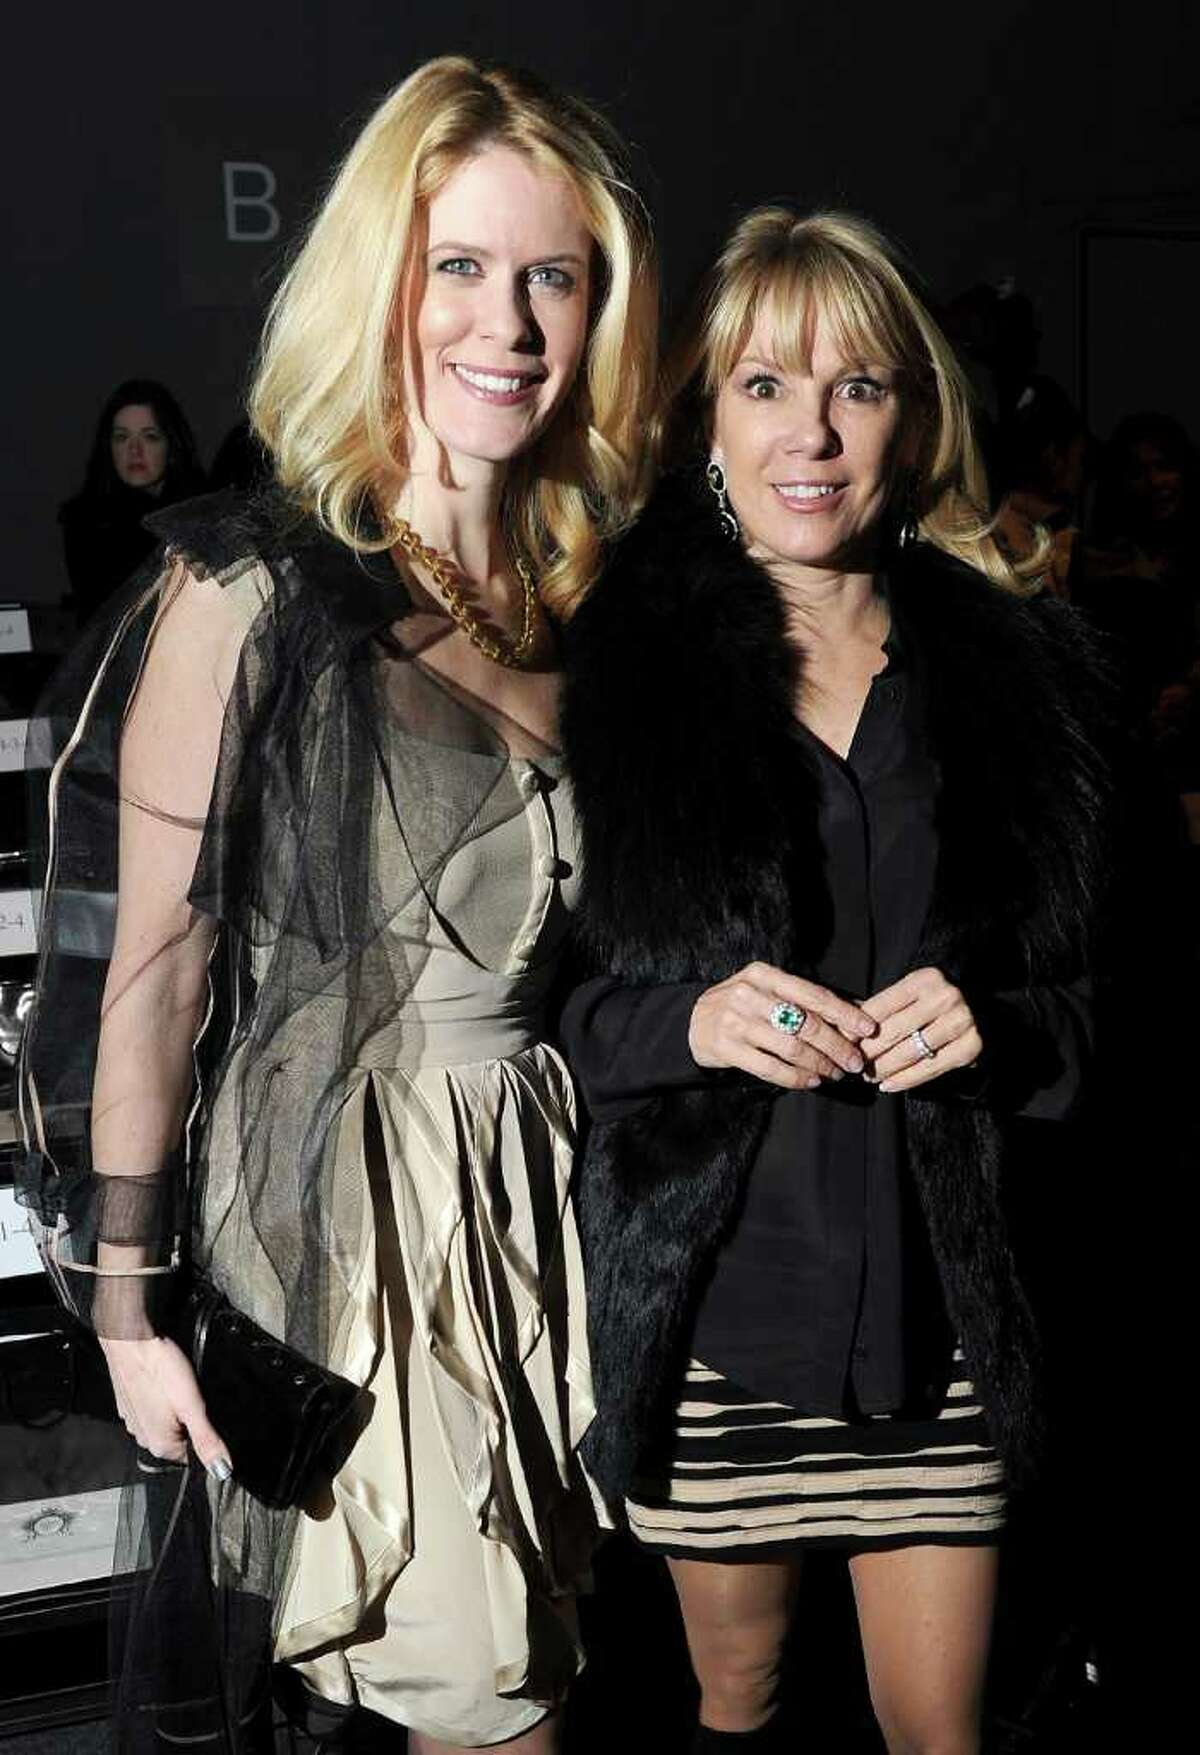 NEW YORK, NY - FEBRUARY 13: TV personalities Alex McCord (L) and Ramona Singer attend the Zang Toi Fall 2012 fashion show during Mercedes-Benz Fashion Week at The Studio at Lincoln Center on February 13, 2012 in New York City.